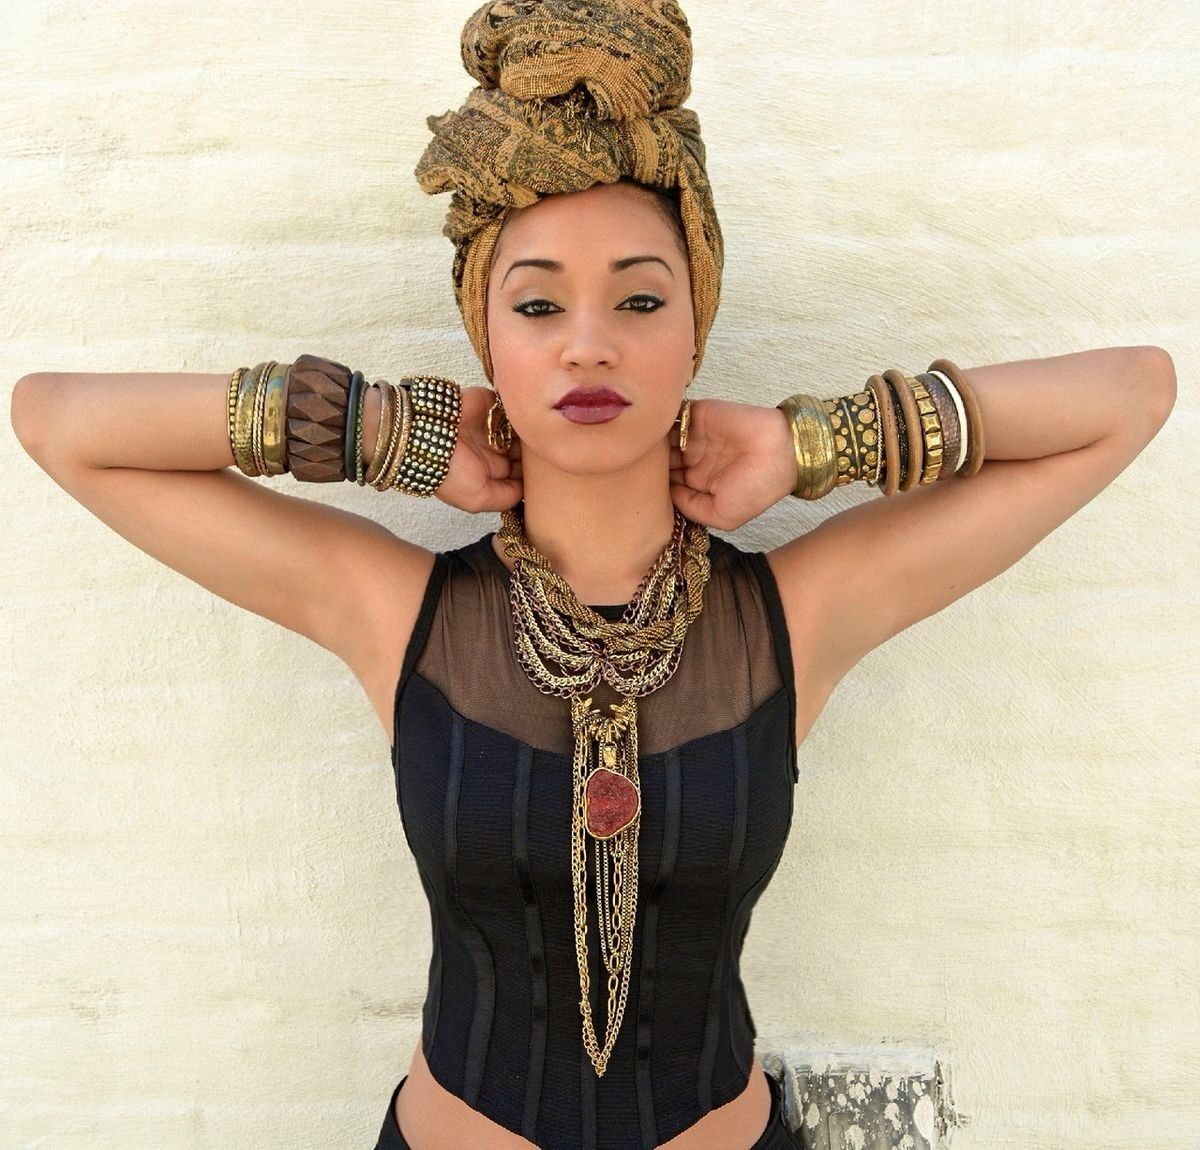 African makeup african hair african goddess african style african - African Style Prints Outfits Attire Head Wrap Fashion African American Chic